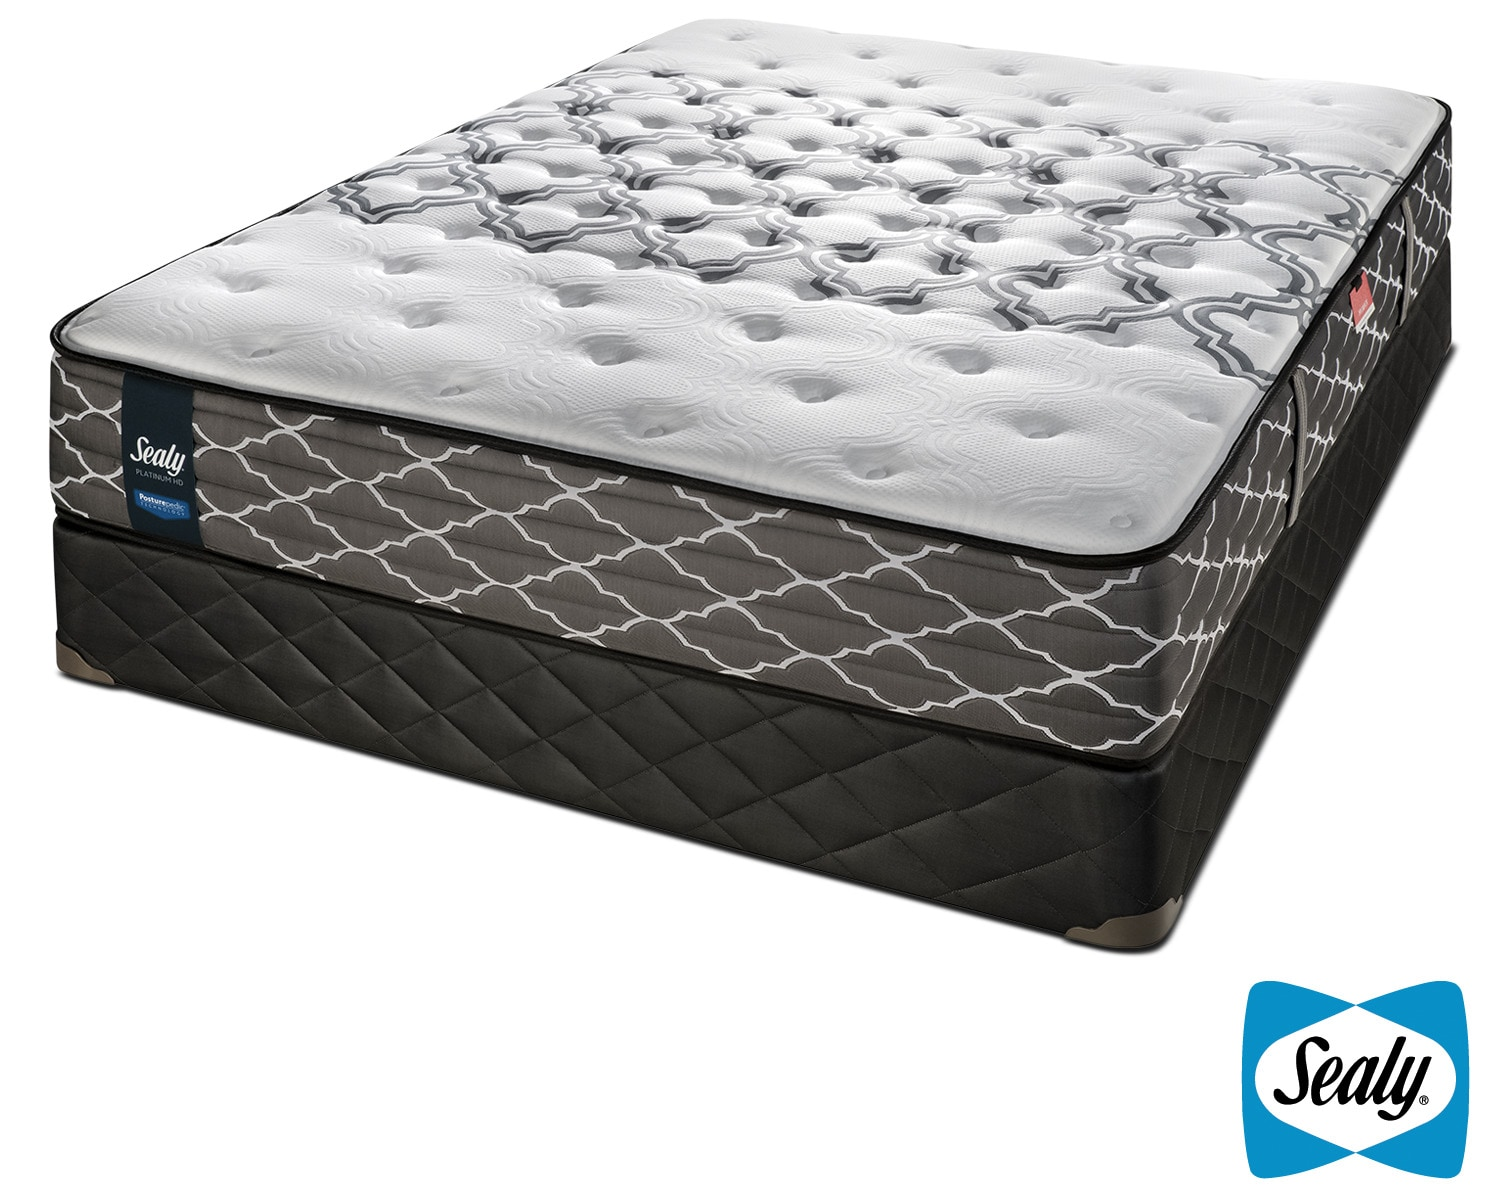 Sealy late night hybrid extra firm full mattress and for Full bed sets with mattress